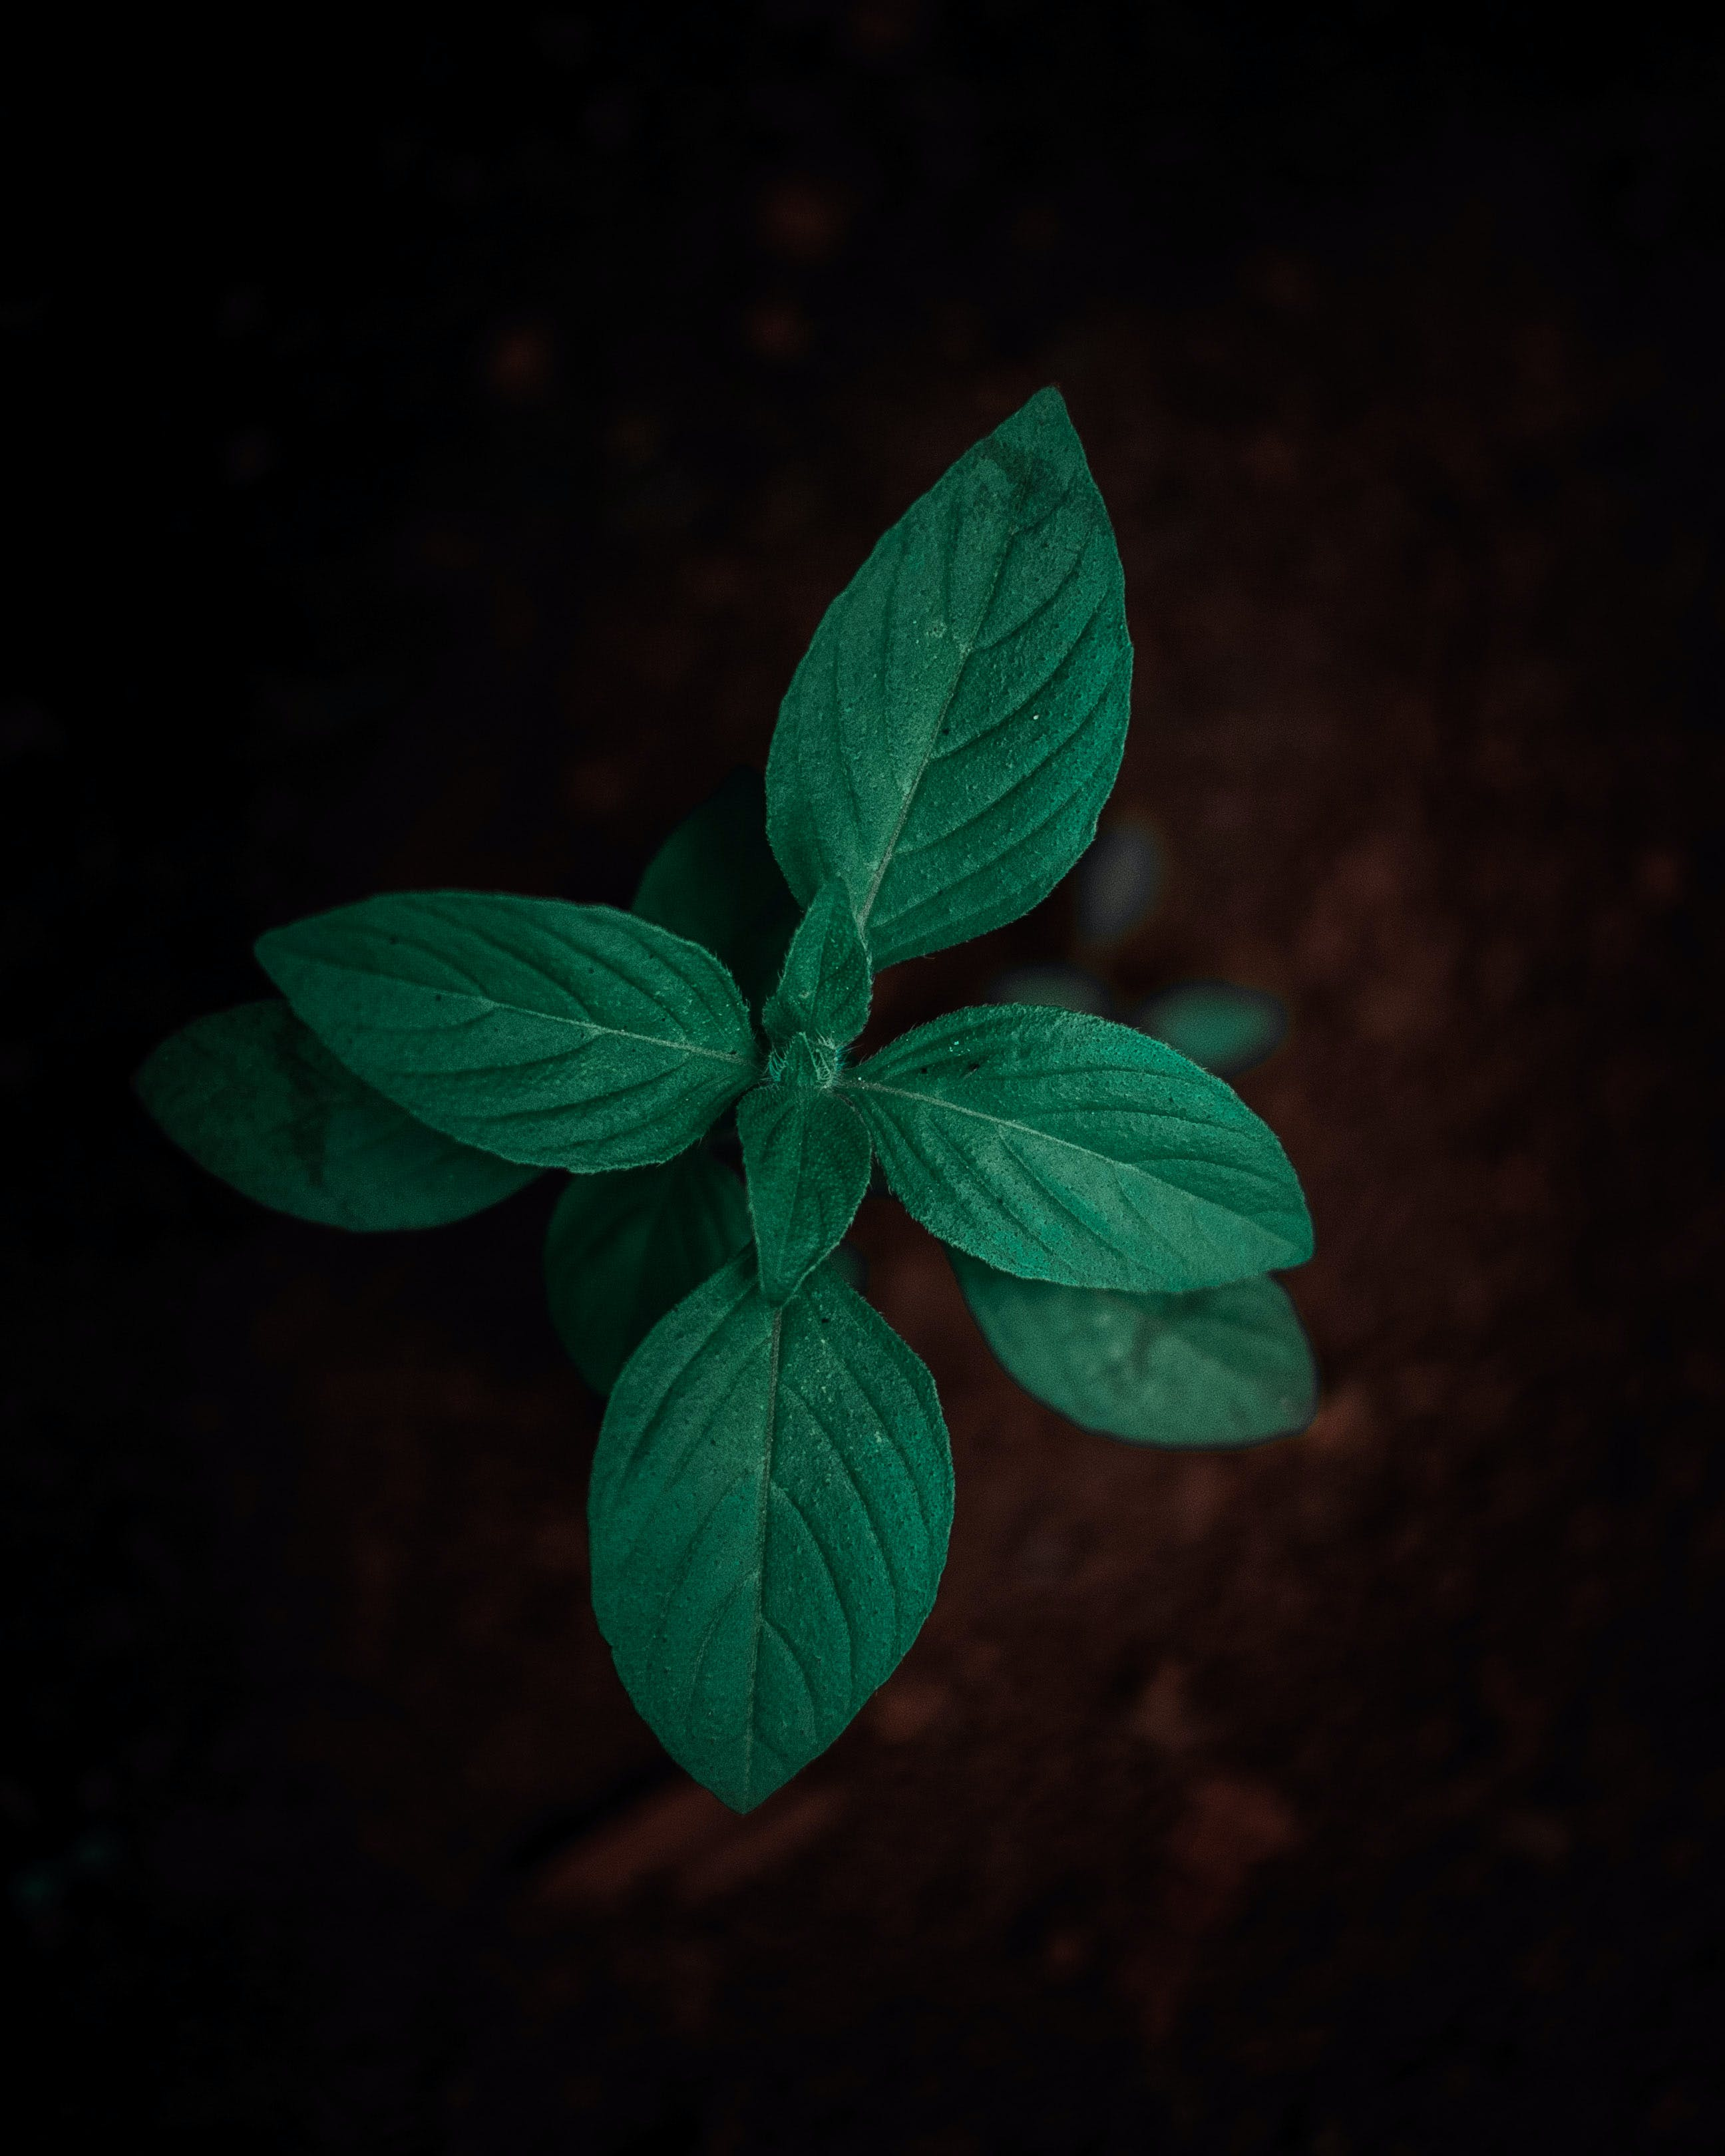 Shallow-focus Photography of Green Leafed Plant